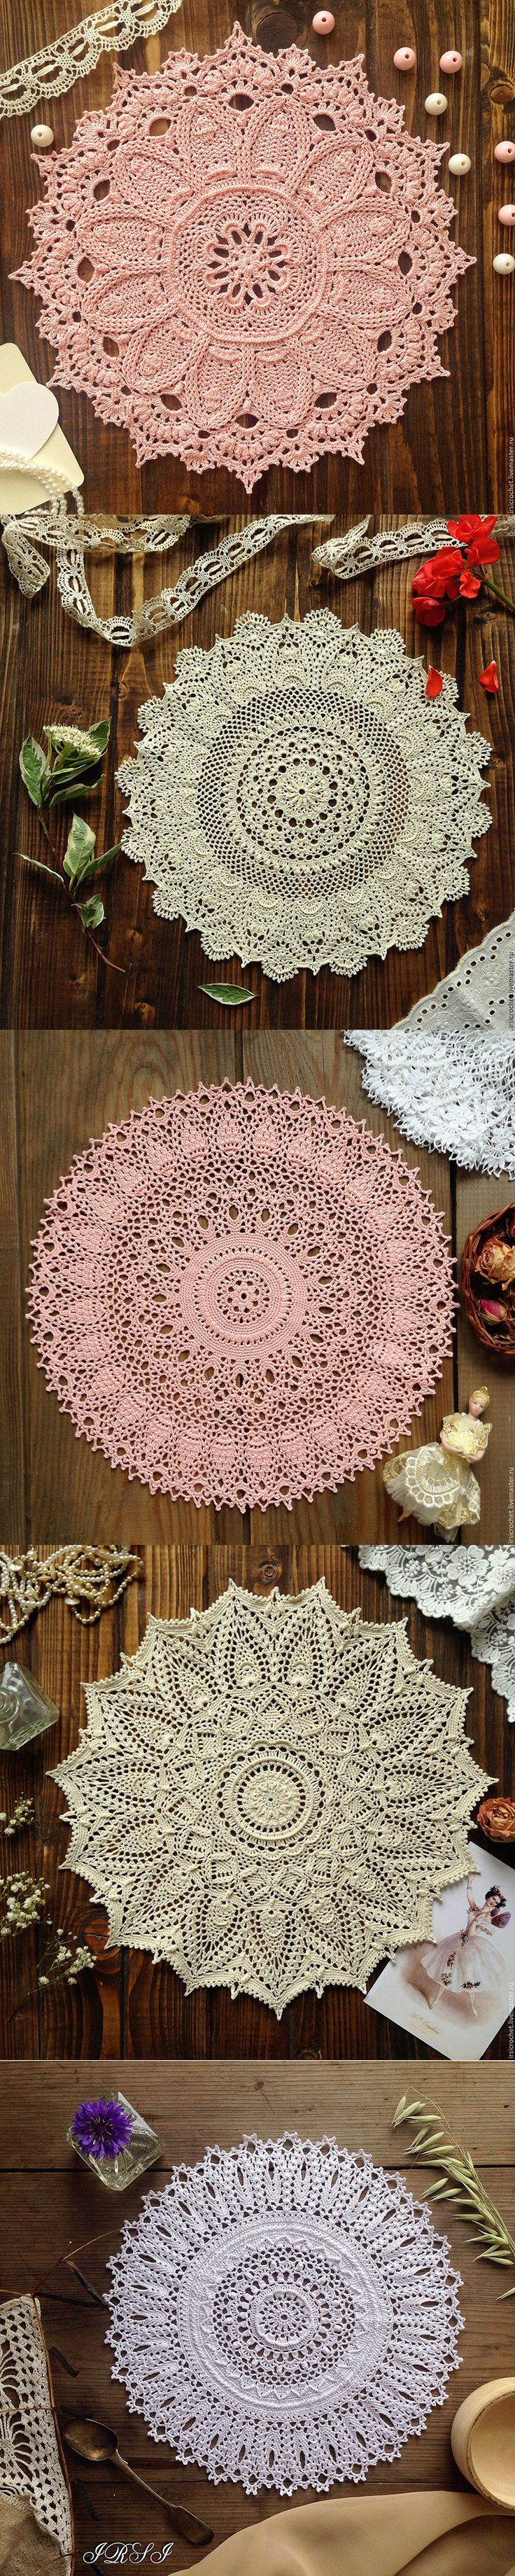 Beautiful crochet doilies by Ирина (IRSIcrochet)